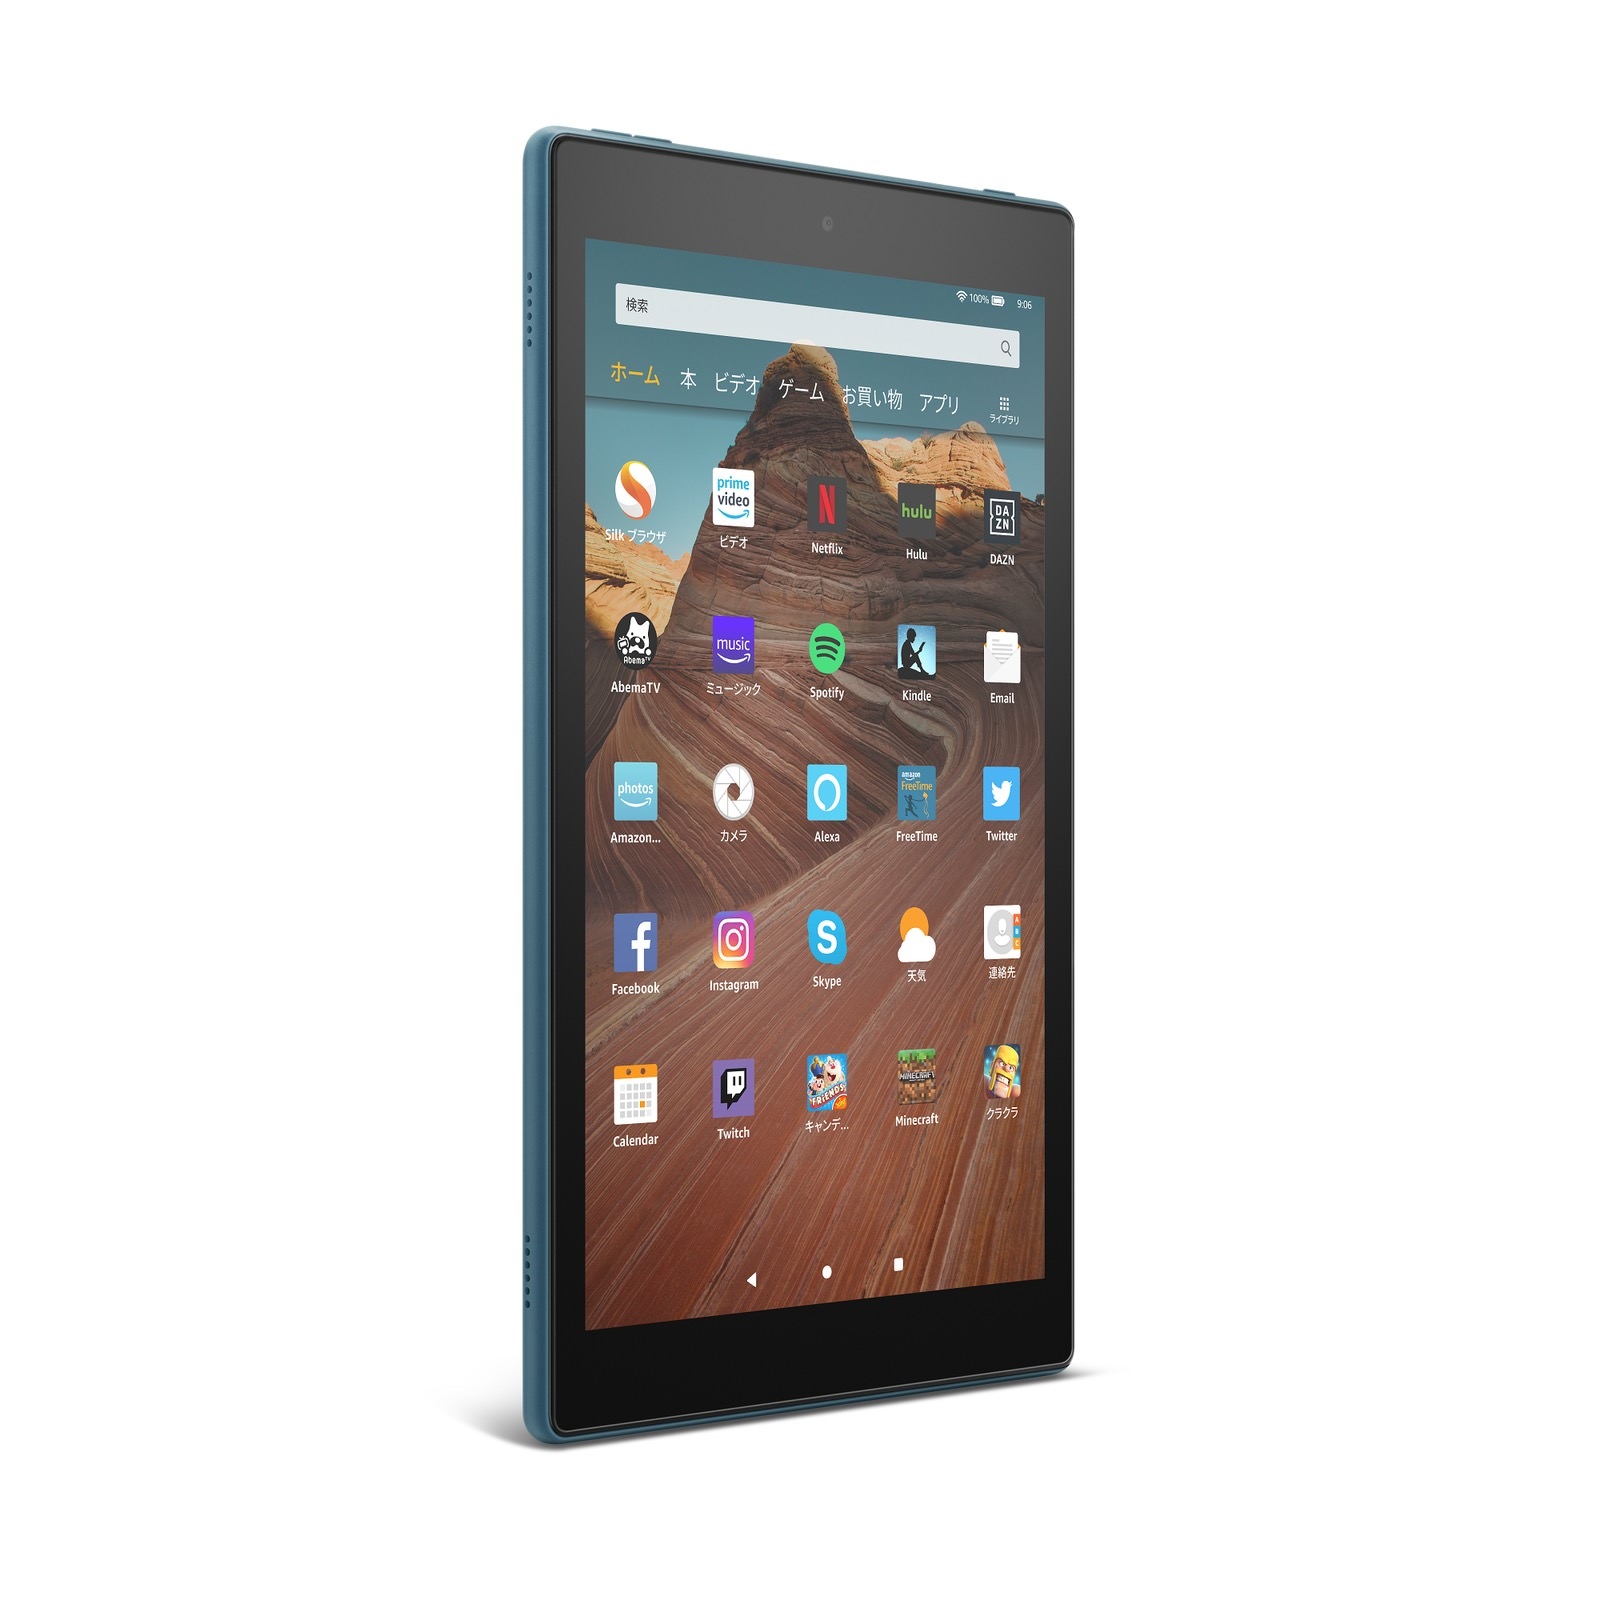 Fire-HD-10-Tablet-New-Model-08.jpg